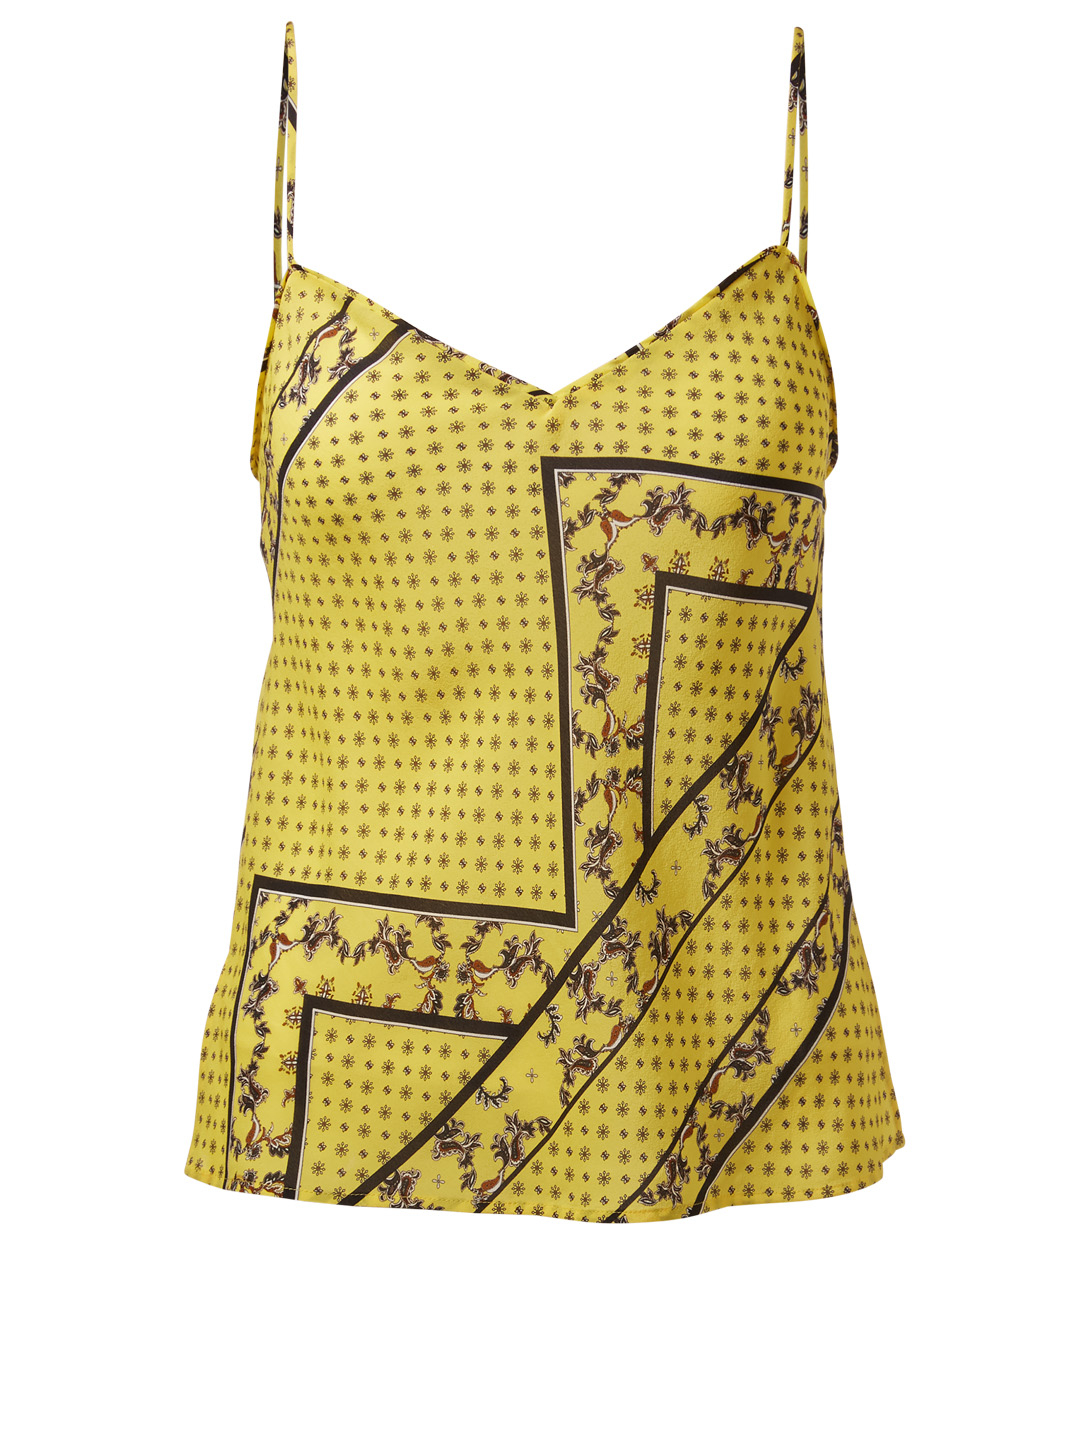 GANNI Hemlock Silk-Blend Blouse Women's Yellow